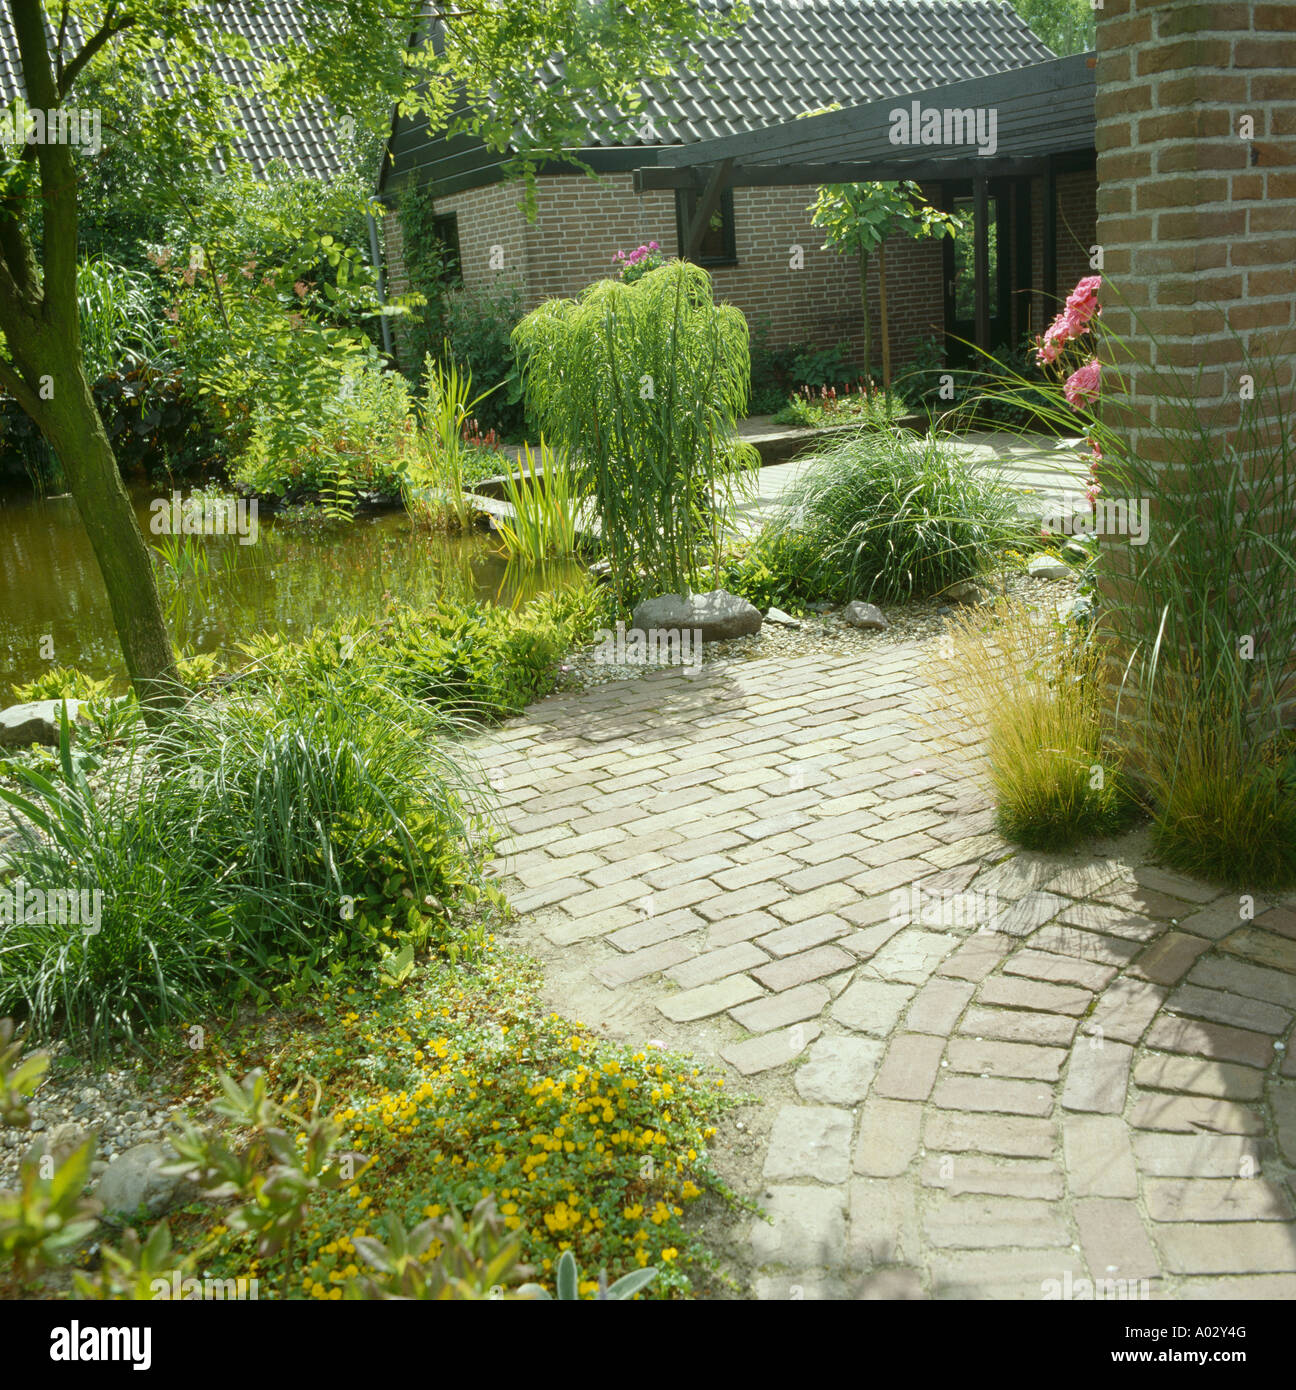 Paving and planting around pond in townhouse garden stock for Plants around garden pond